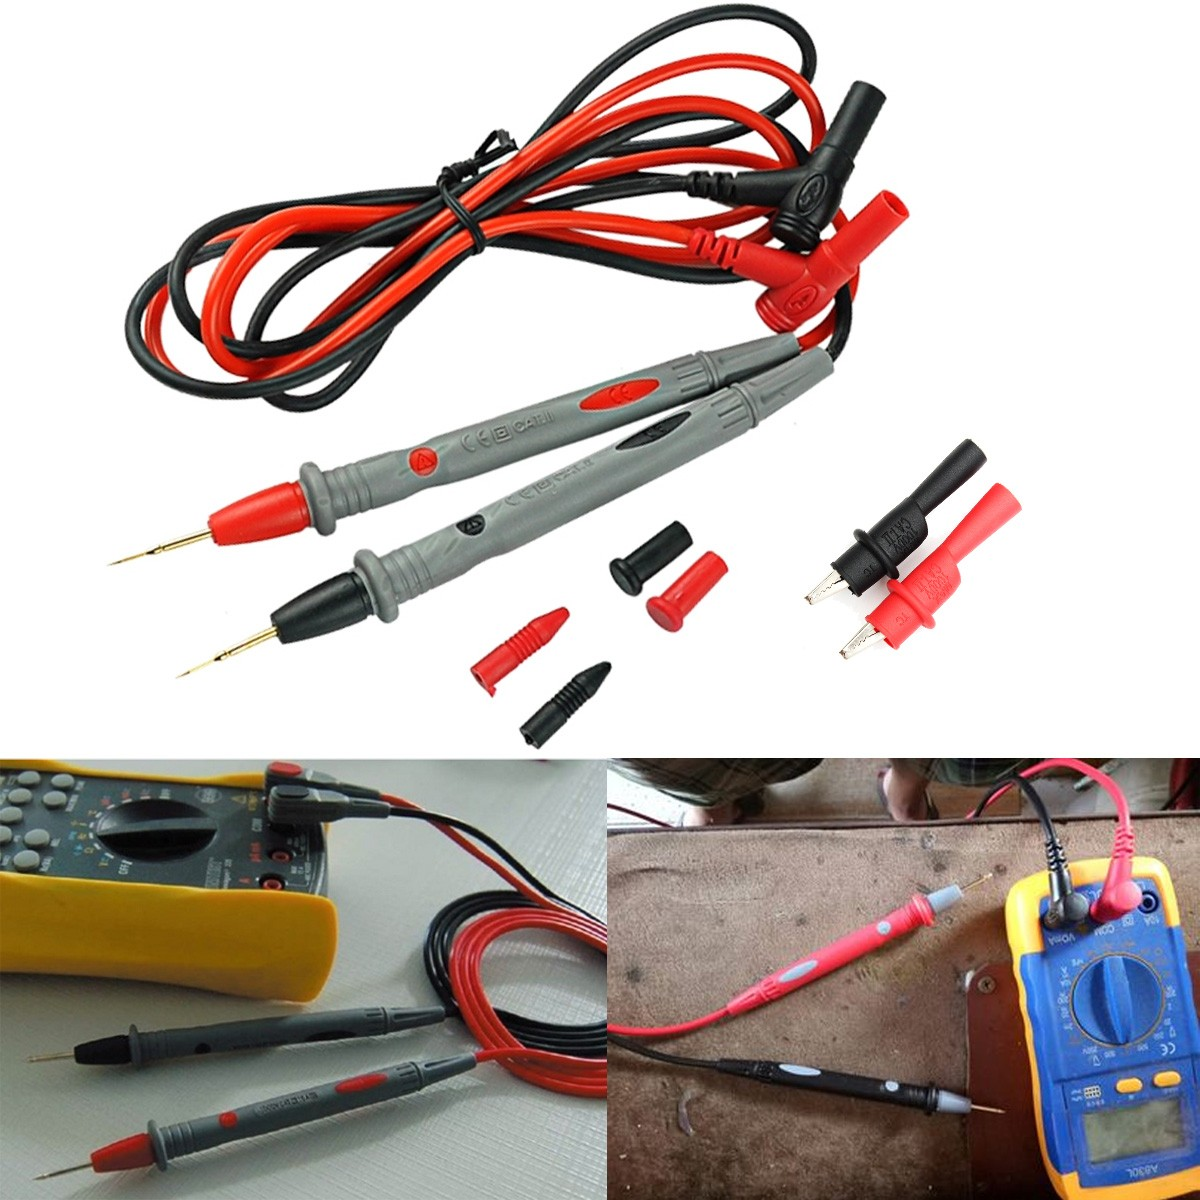 DANIU 20A Multimeter Test Probe Test Lead Alloy Alligator Clips Agilent/Ideal Clamp Multi Meters